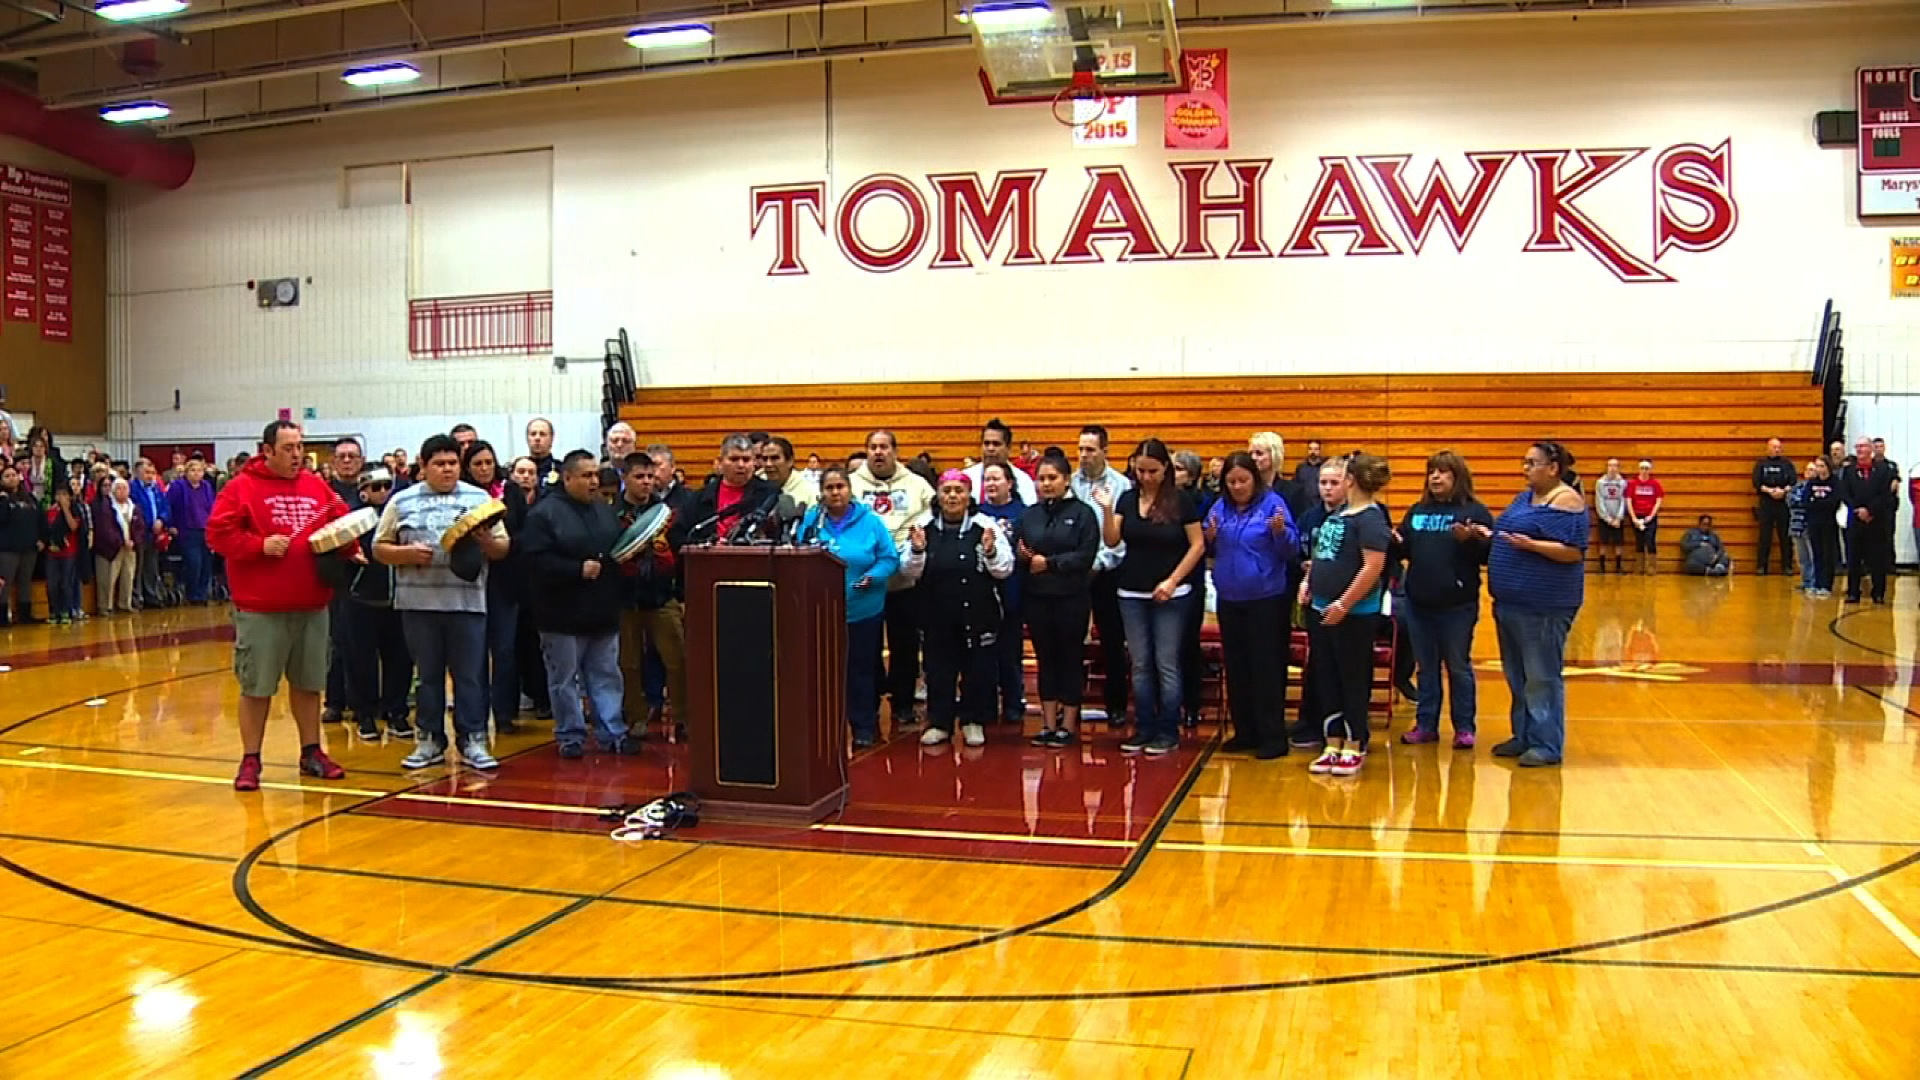 Students, parents and school leaders met inside the gym at Marysville-Pilchuck High School on Sunday to remember, mourn and talk about ways to move forward. Students and parents were separated for private discussions.